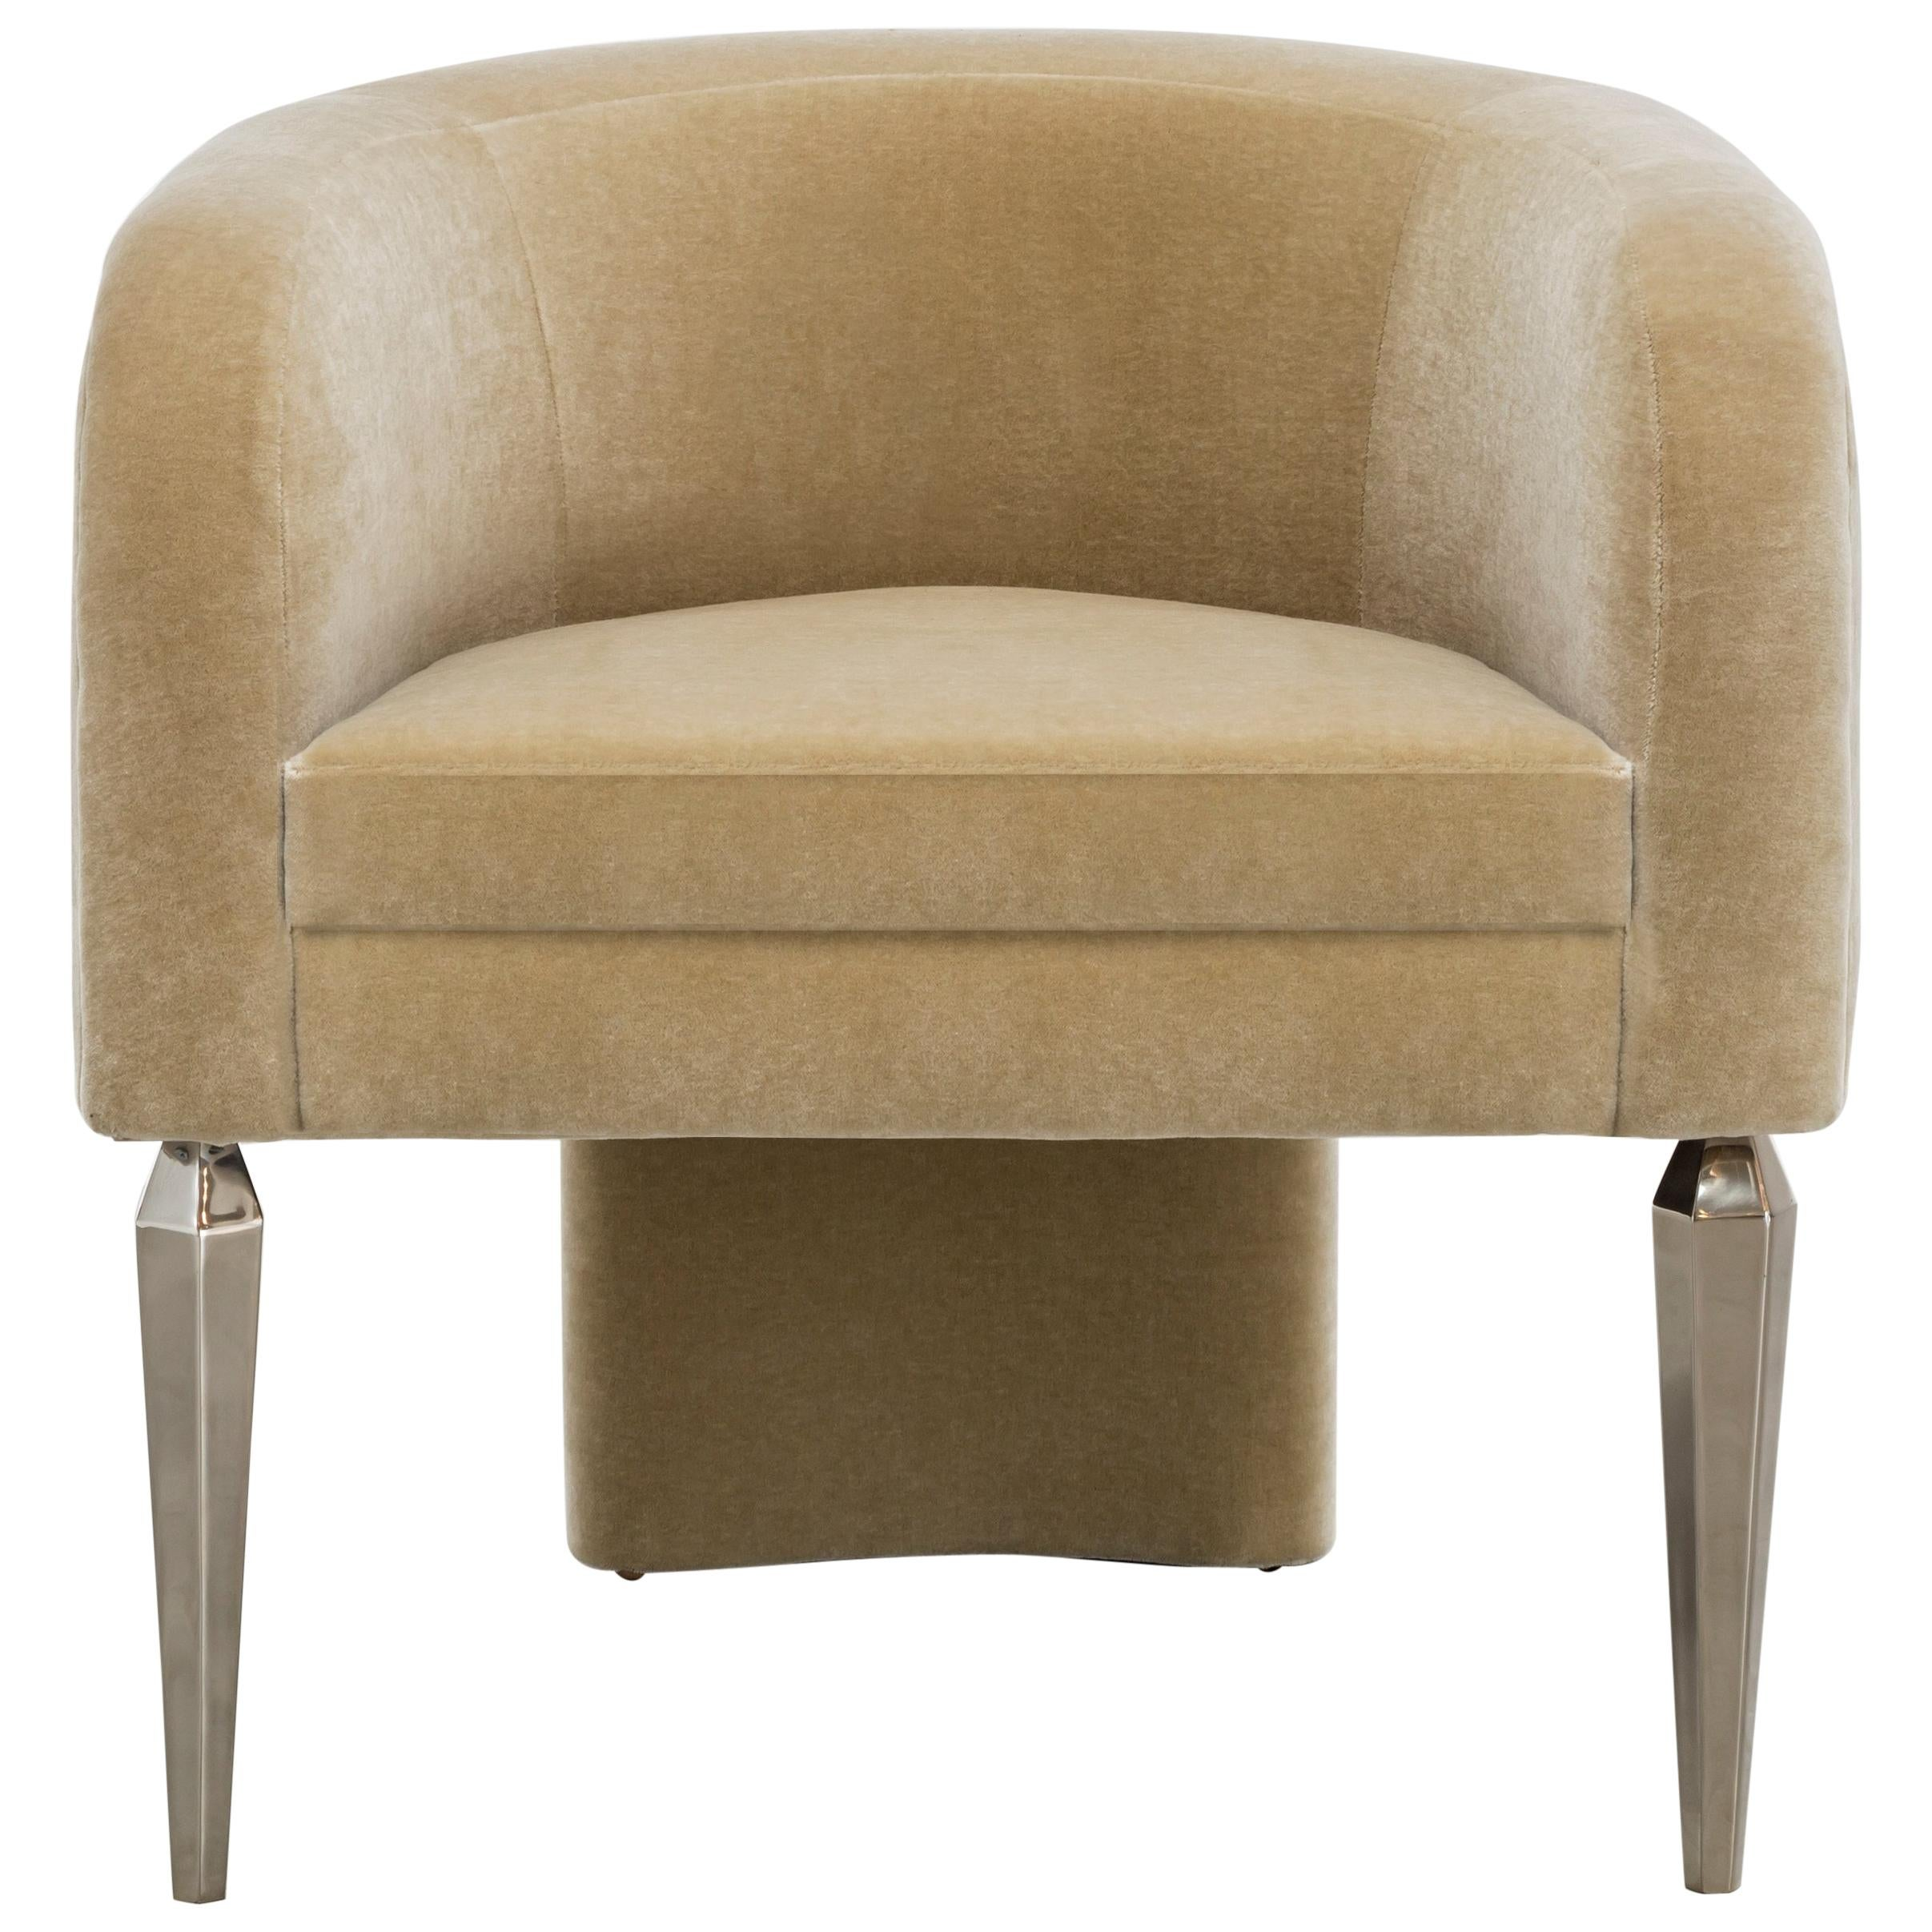 POMPE CHAIR - Modern Mohair Chair with Faceted Stiletto Legs